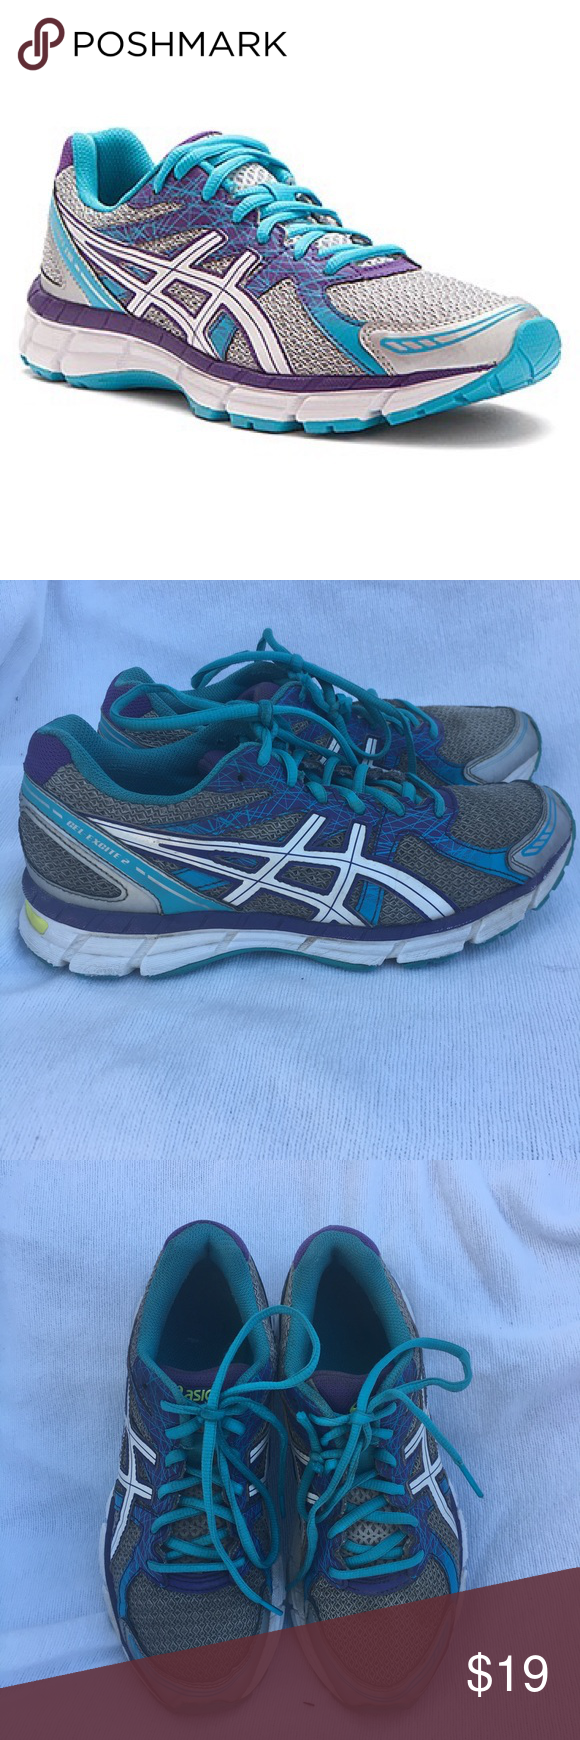 Asics Gel Excite 2 | Asics, How to wear